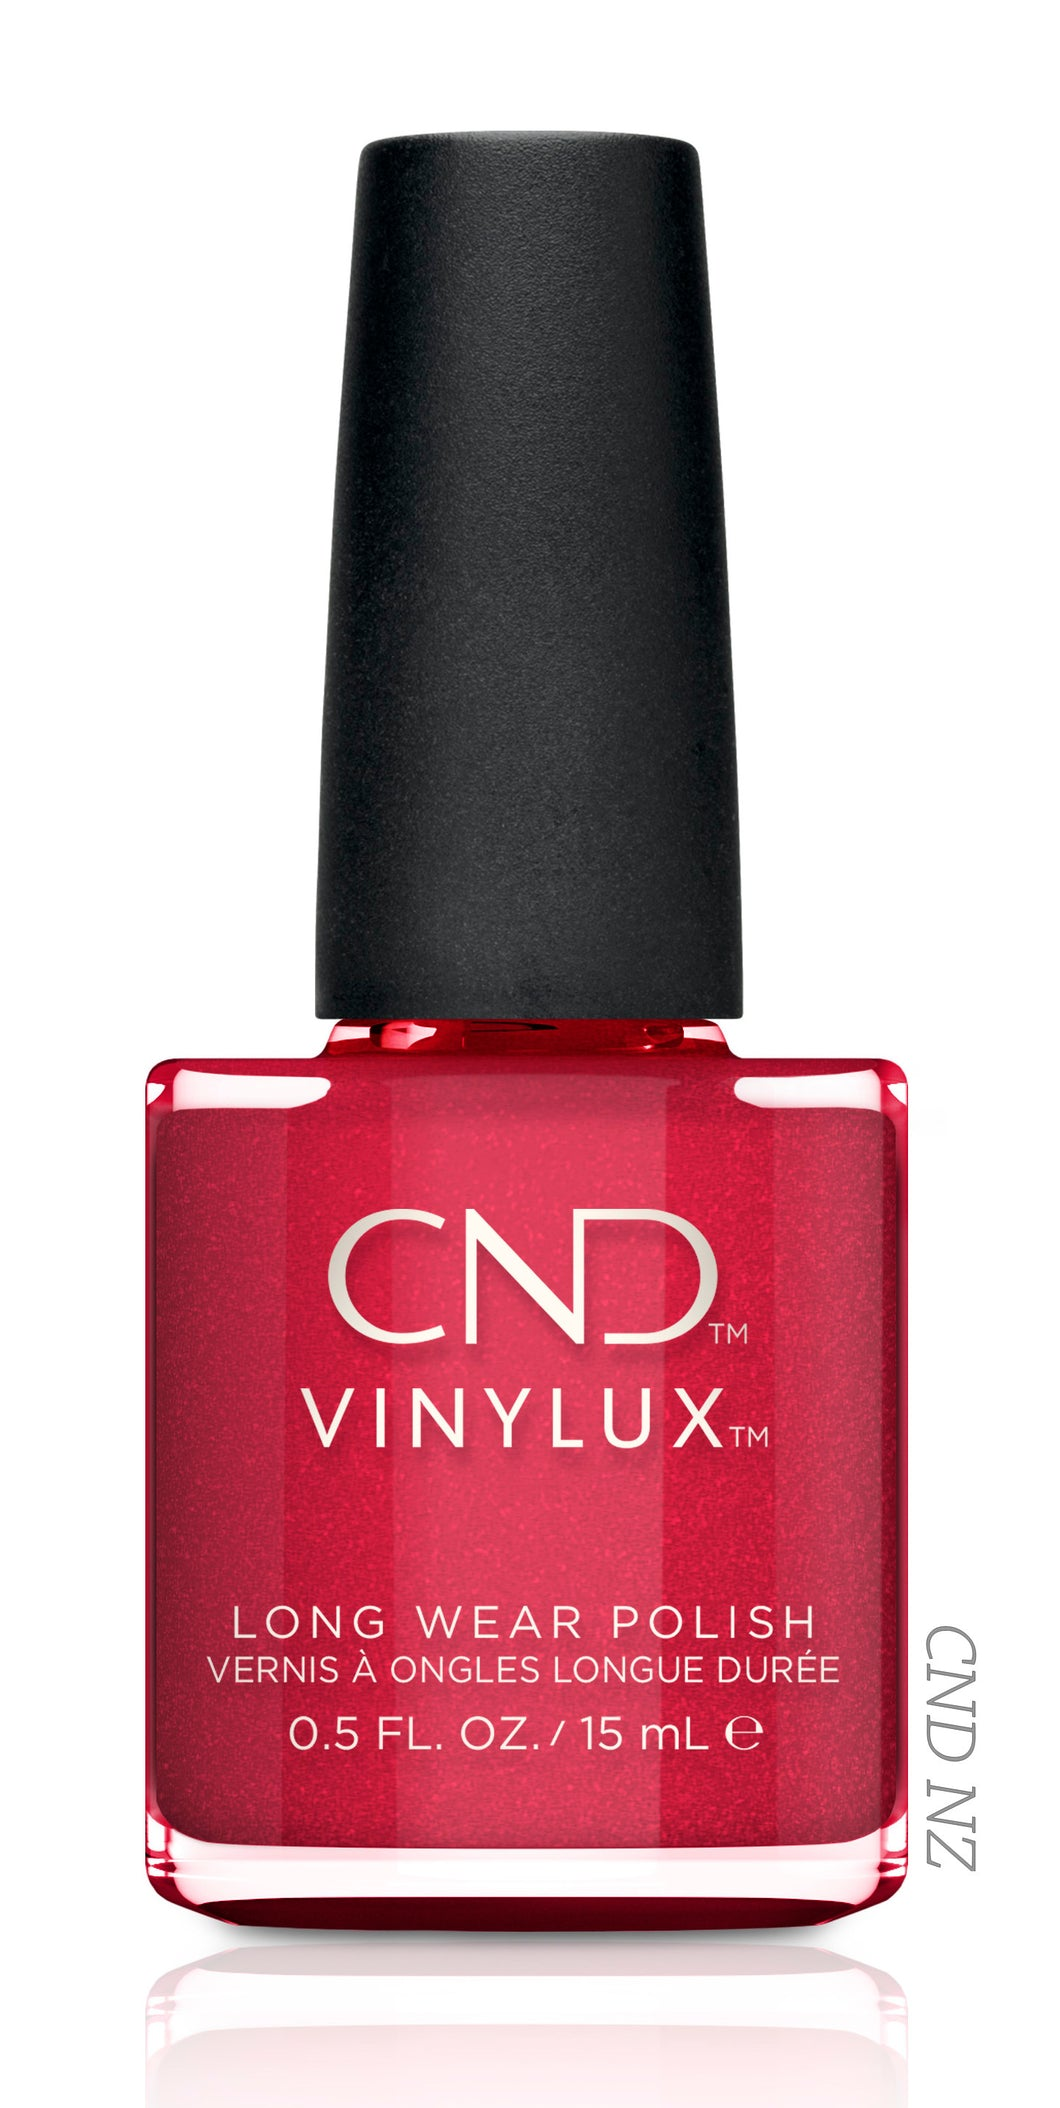 CND VINYLUX - Kiss of Fire #288